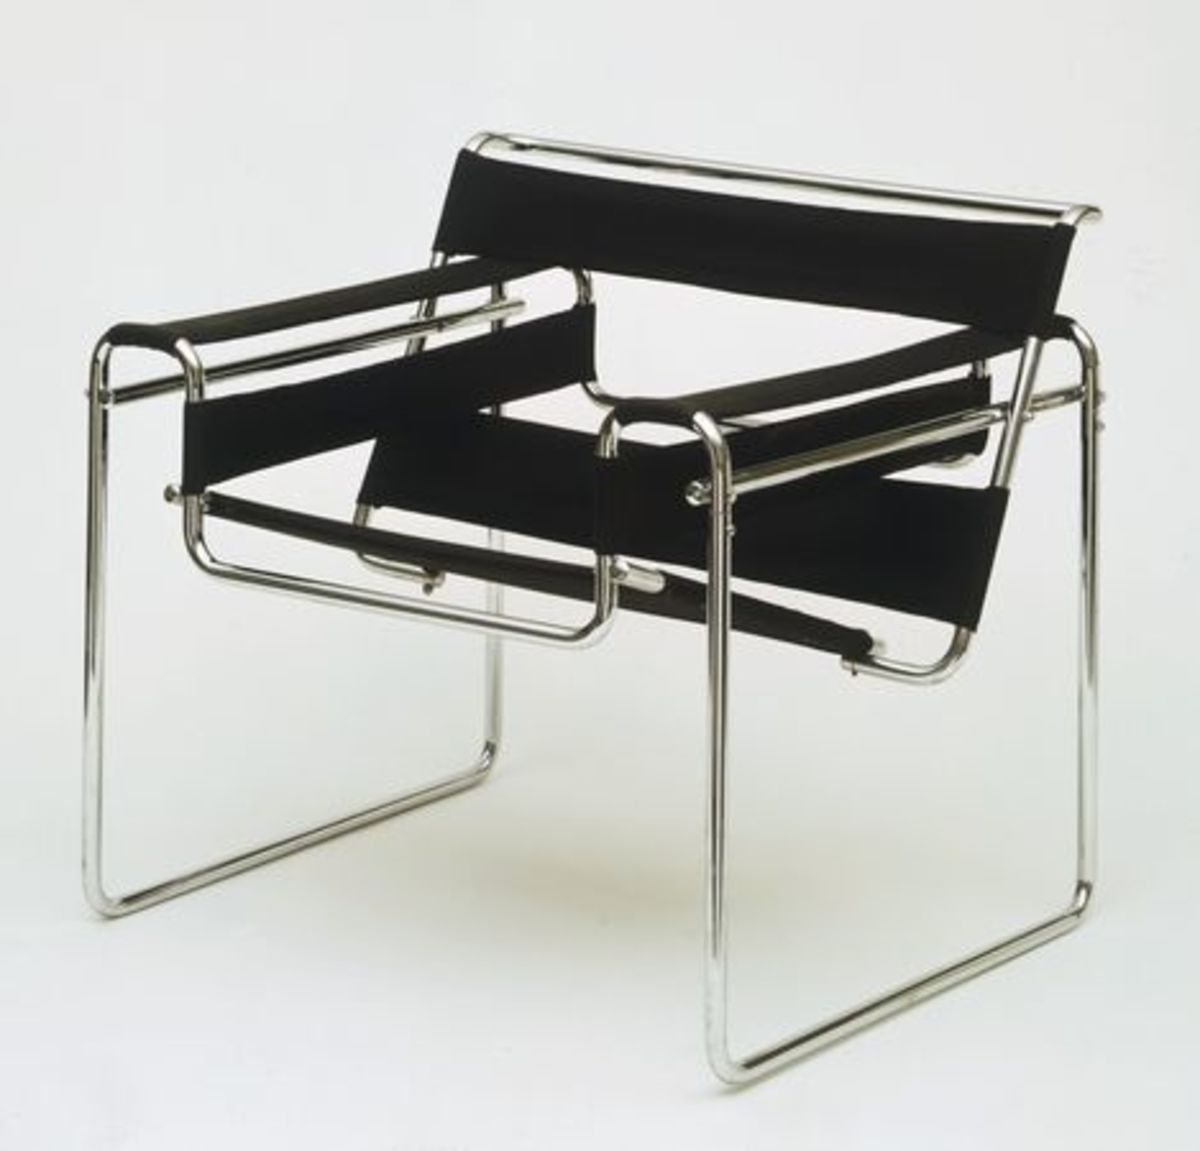 Marcel Breuer's revolutionary chair which he designed while still a student.